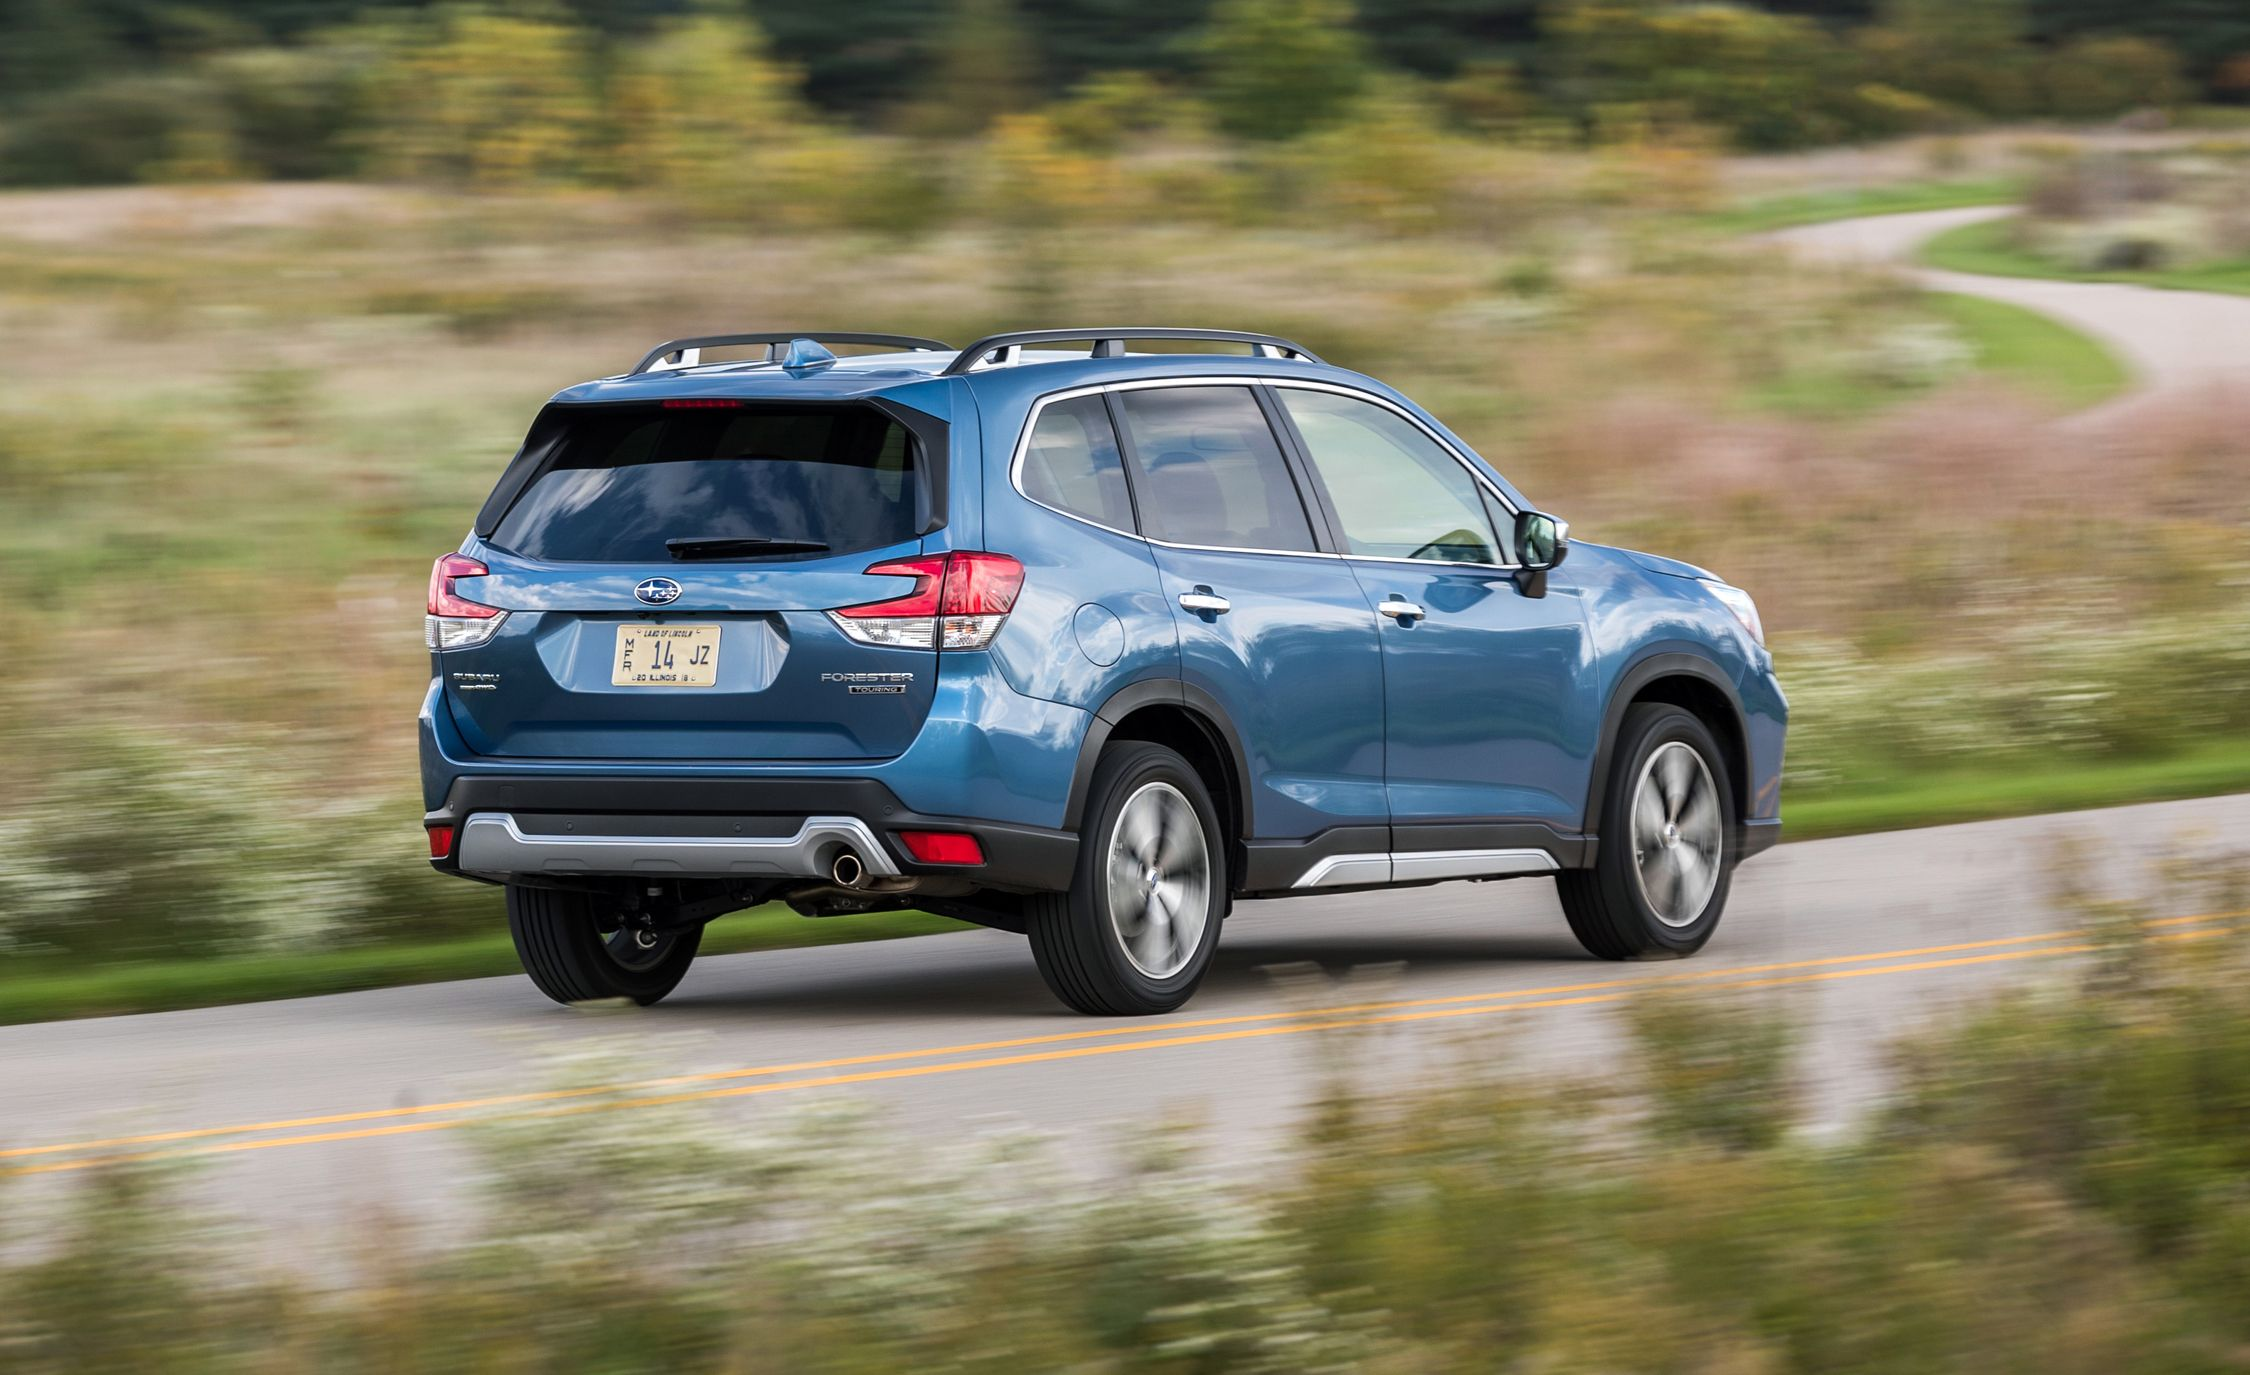 Comments on: The 2019 Subaru Forester Delivers for Brand Loyalists